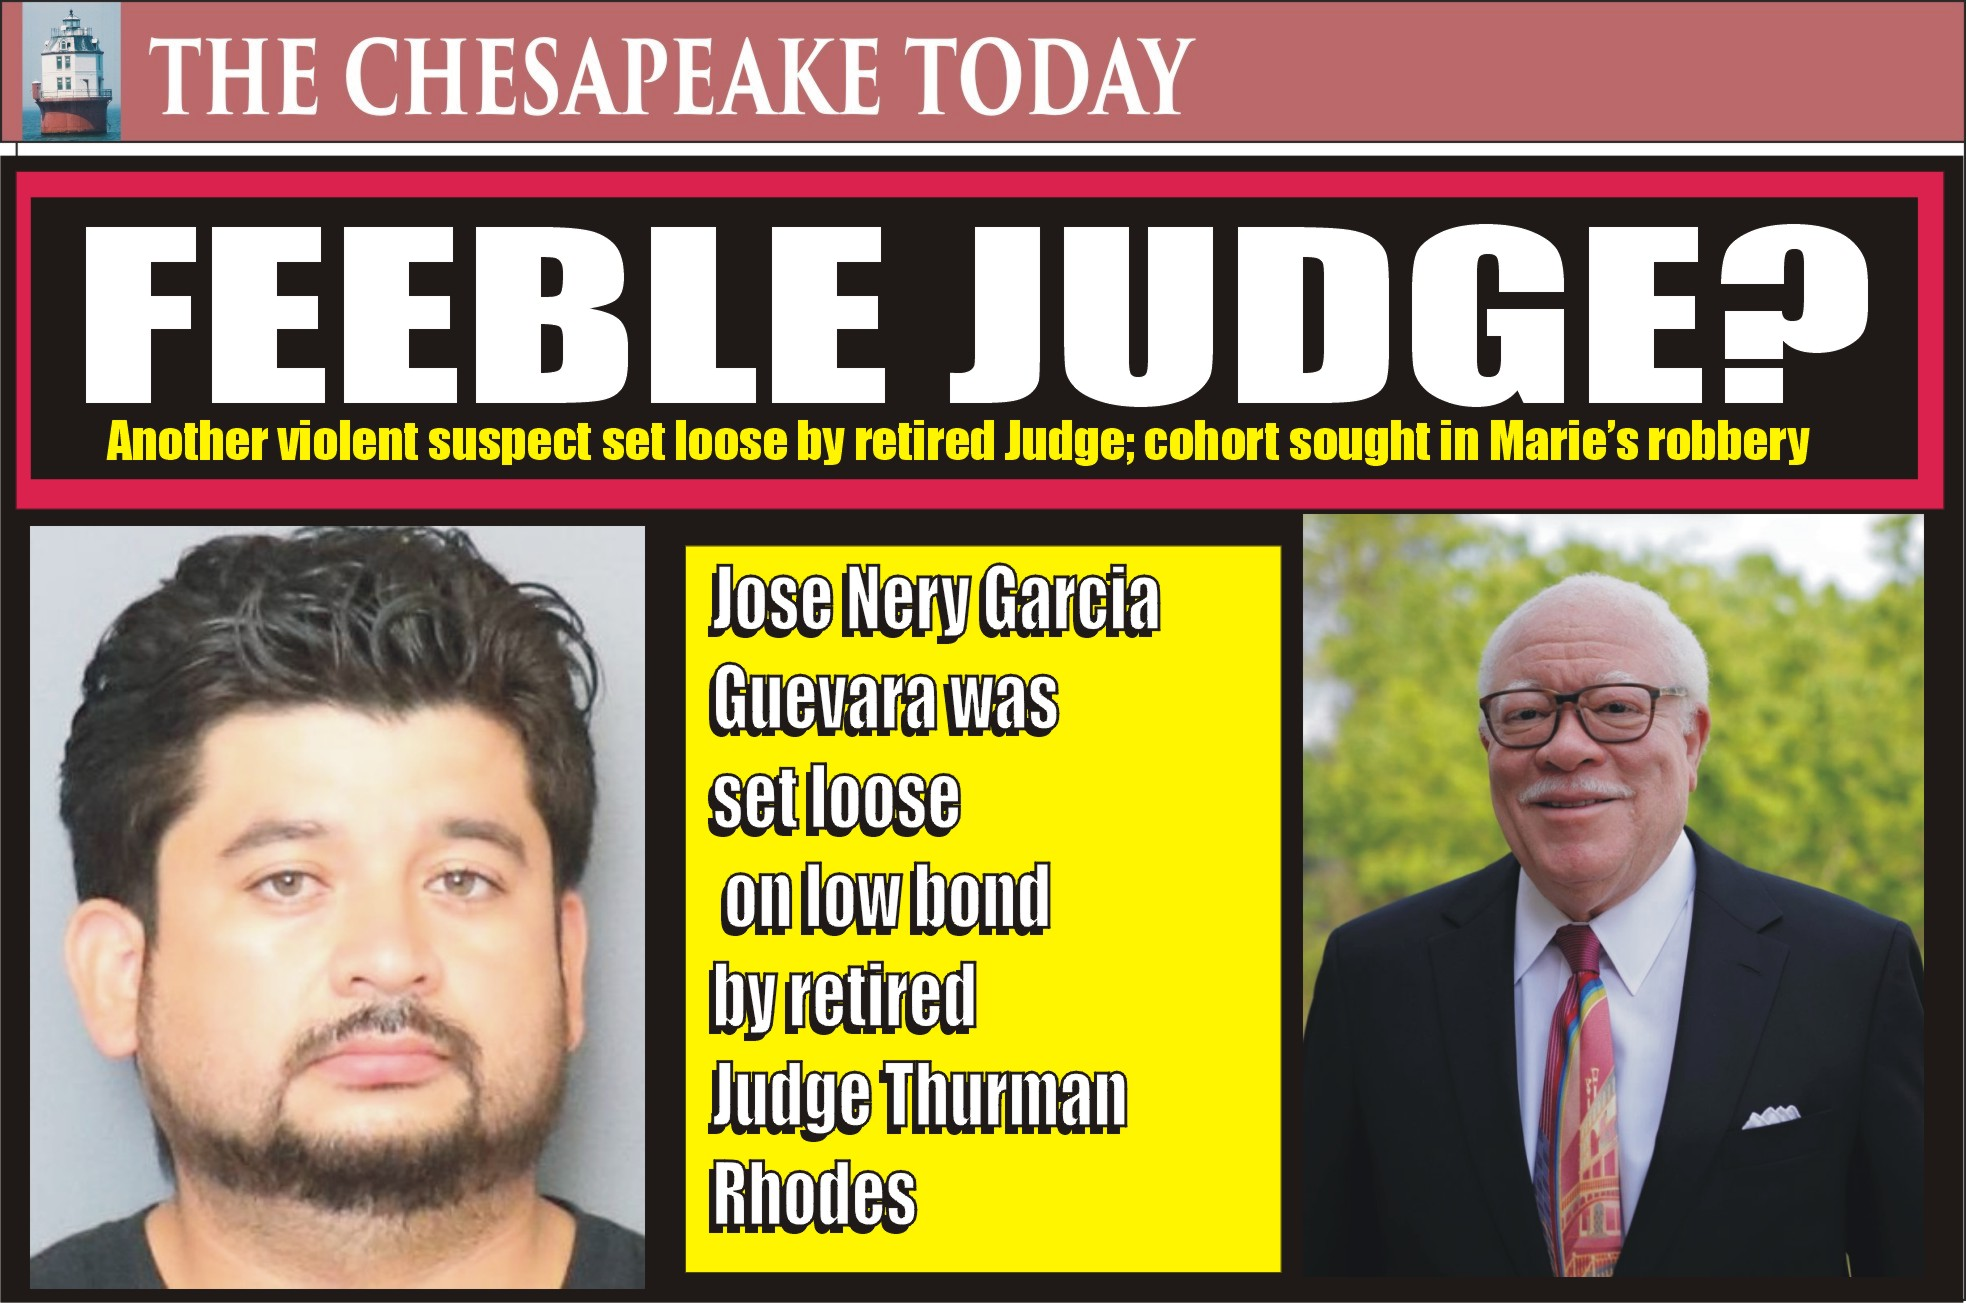 ARMED ROBBERY: Charles Sheriff Troy Berry reports arrest of Jose Nery Garcia Guevara in armed robbery and stabbing of cook at Marie's Diner; Retired Judge Thurman Rhodes allowed low bond